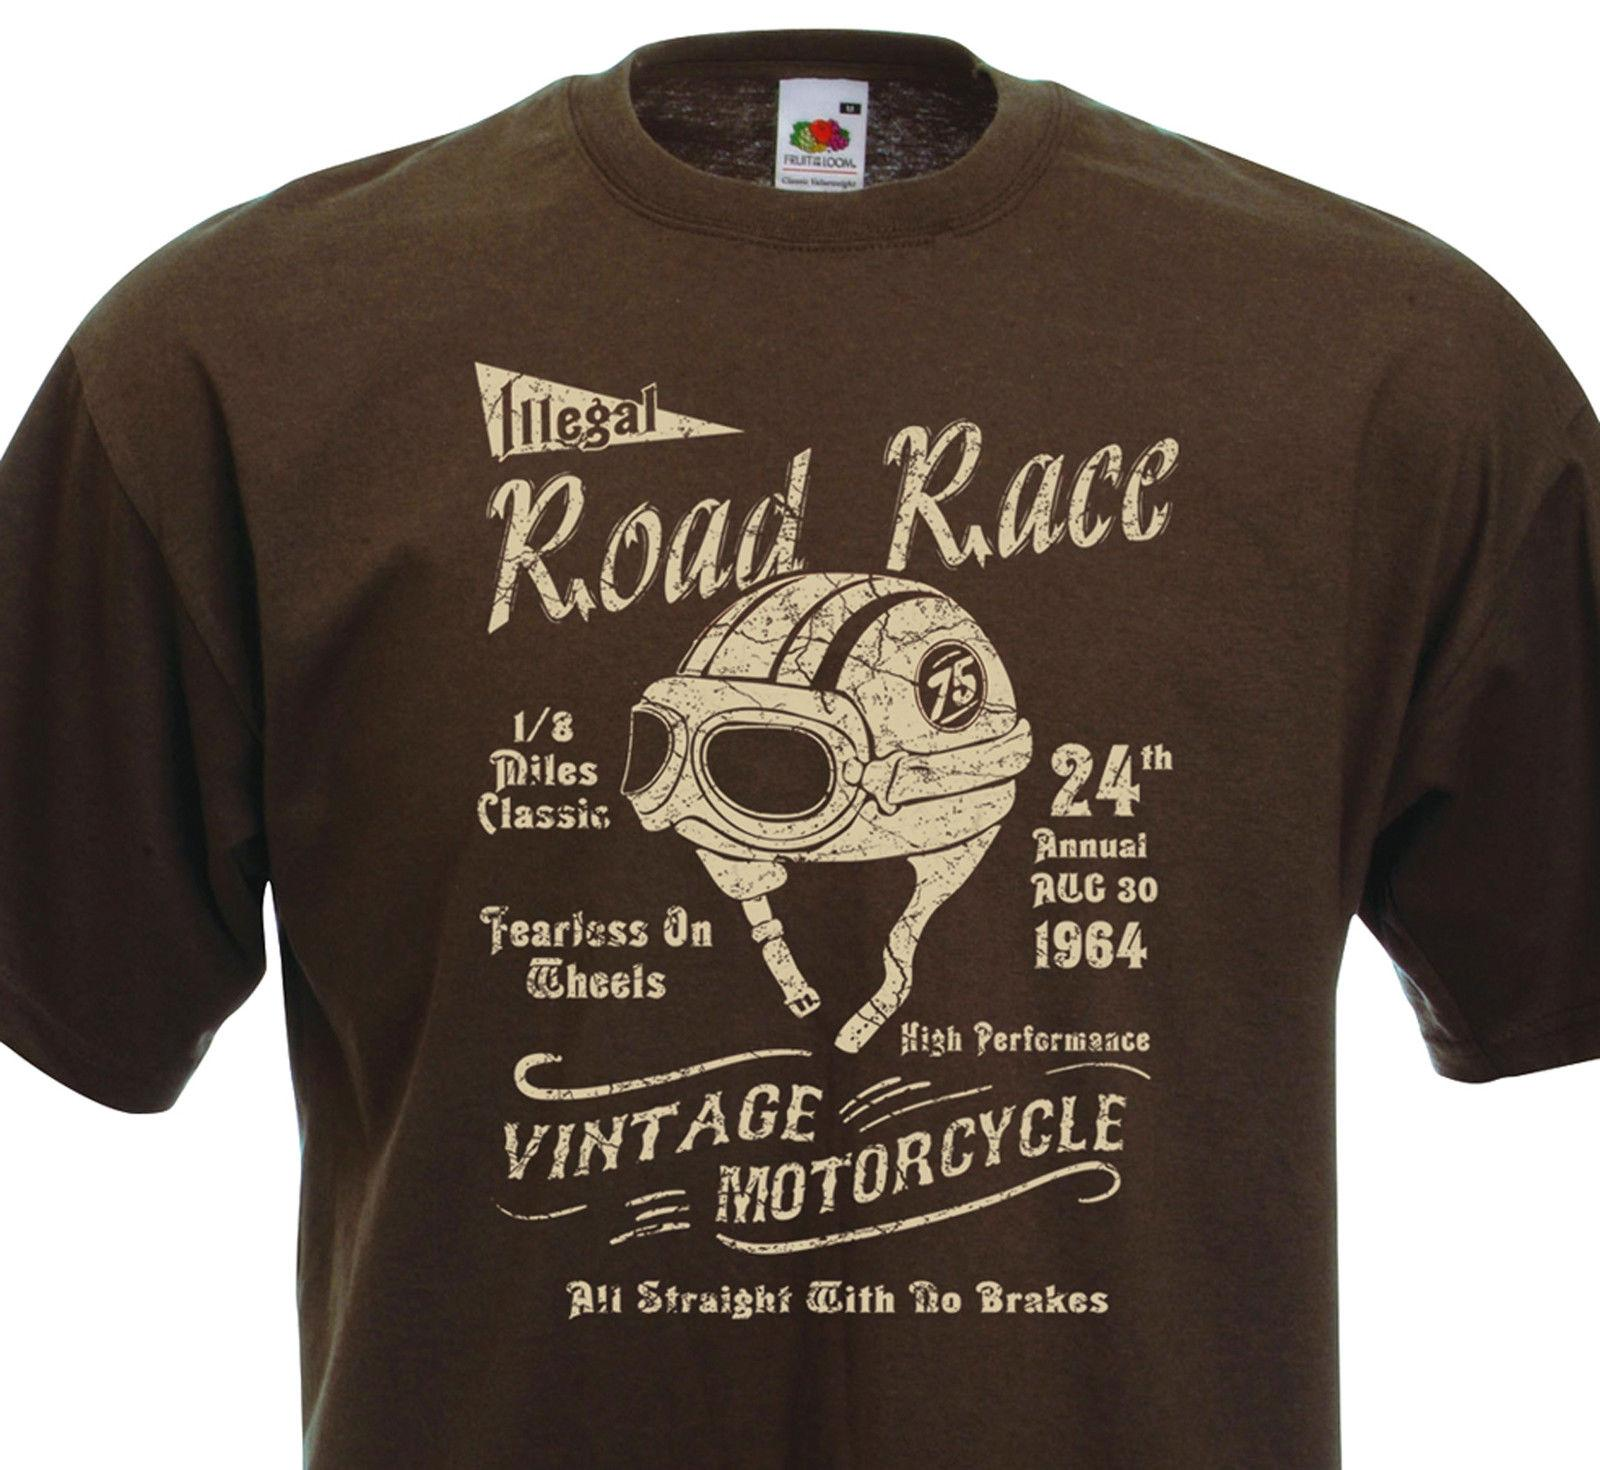 666903dc905 Details Zu T Shirt Illegal ROAD RACE Cafe Racer Racing Vintage Motorcycle  Triumph BSA Funny Unisex Casual Tee Top Free T Shirts T Shirts Deals From  ...